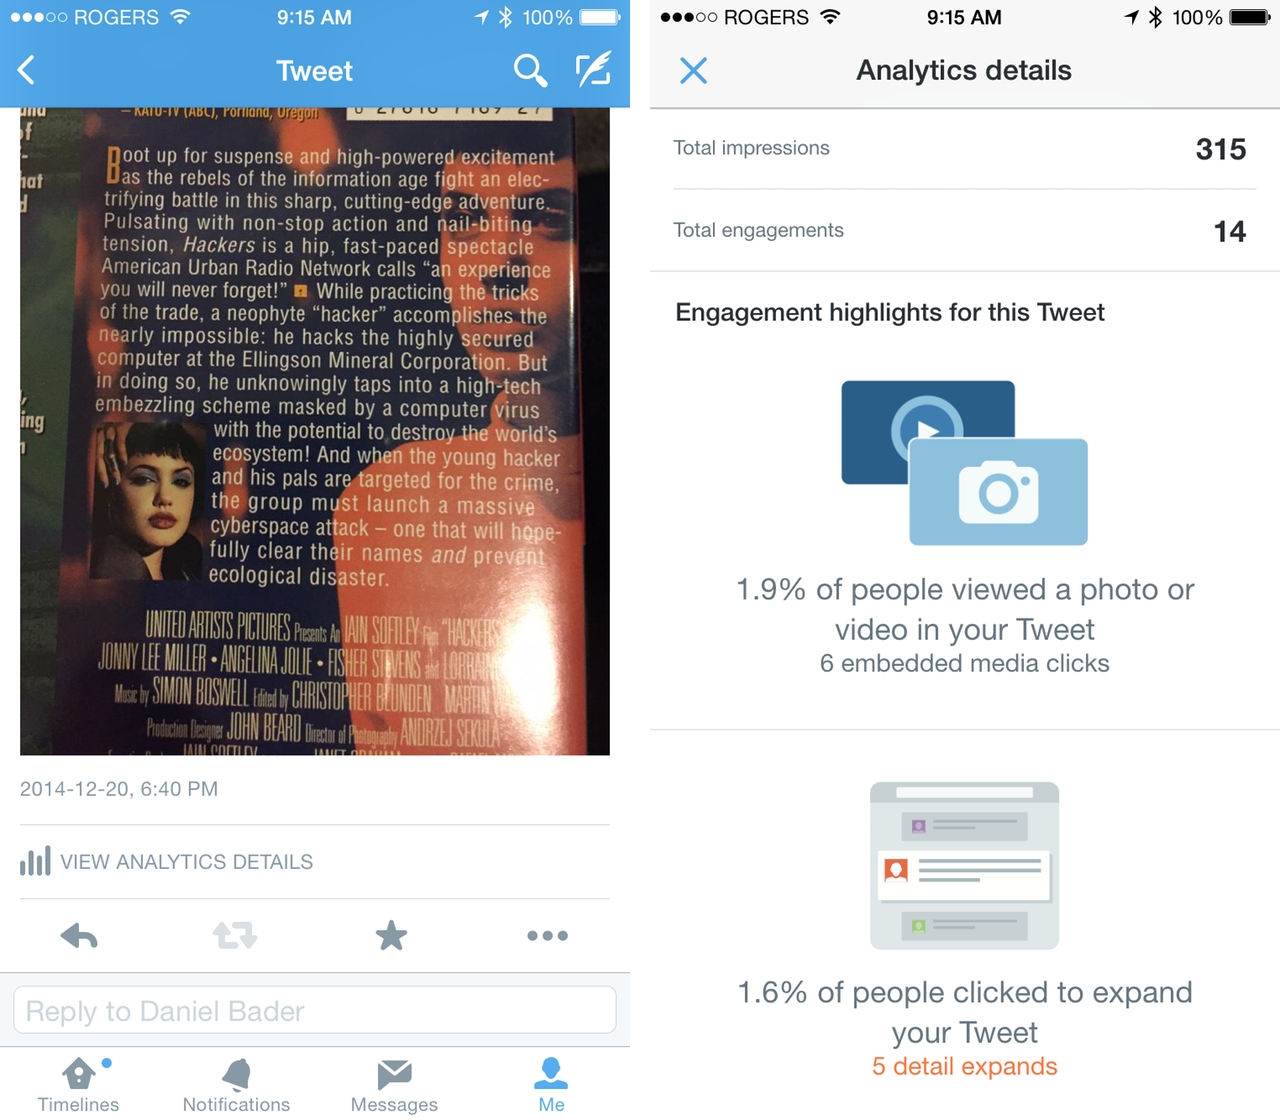 how to get twitter analytics on mobile